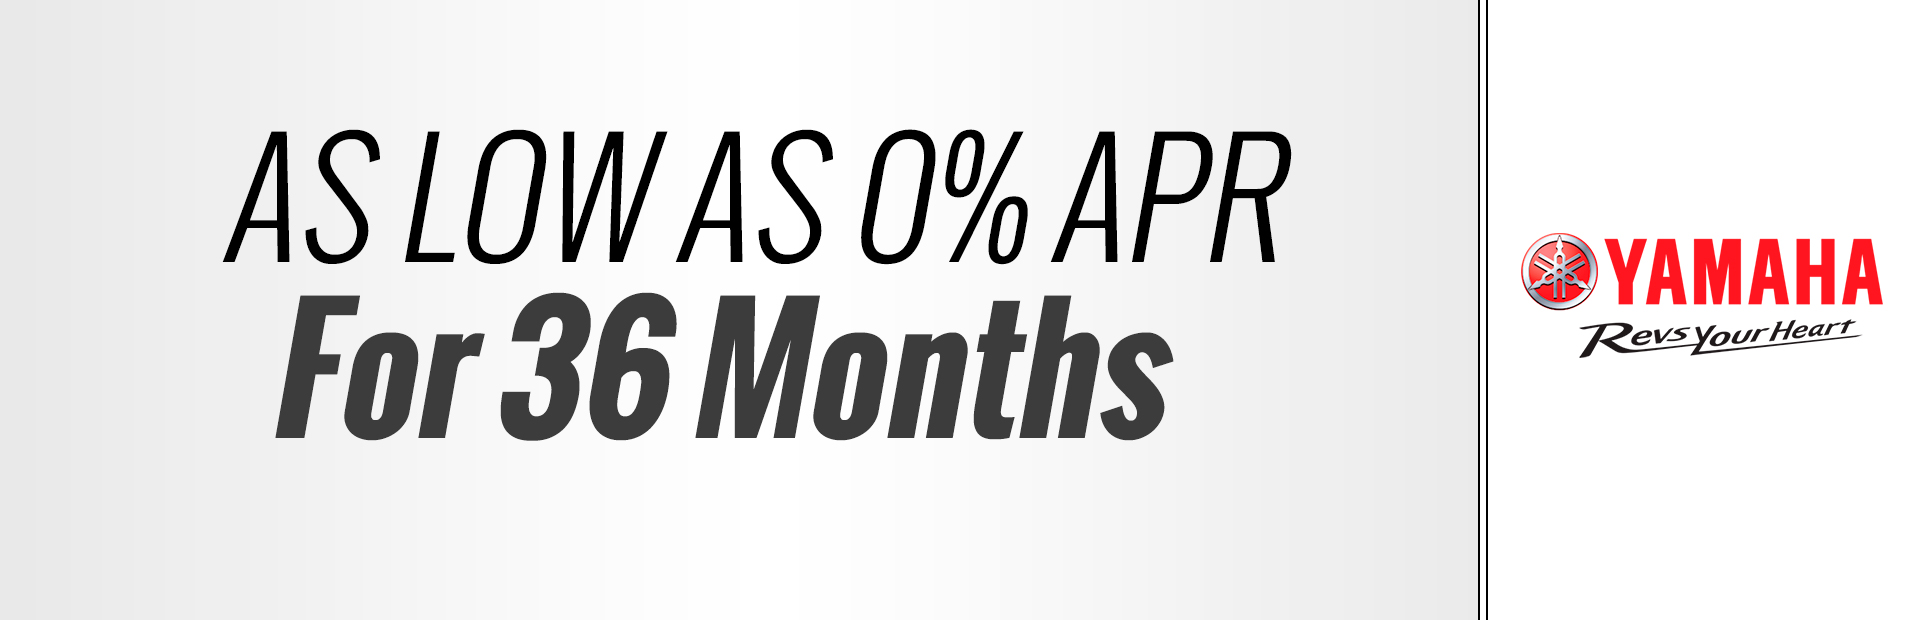 Yamaha: As Low As 0% APR for 36 months